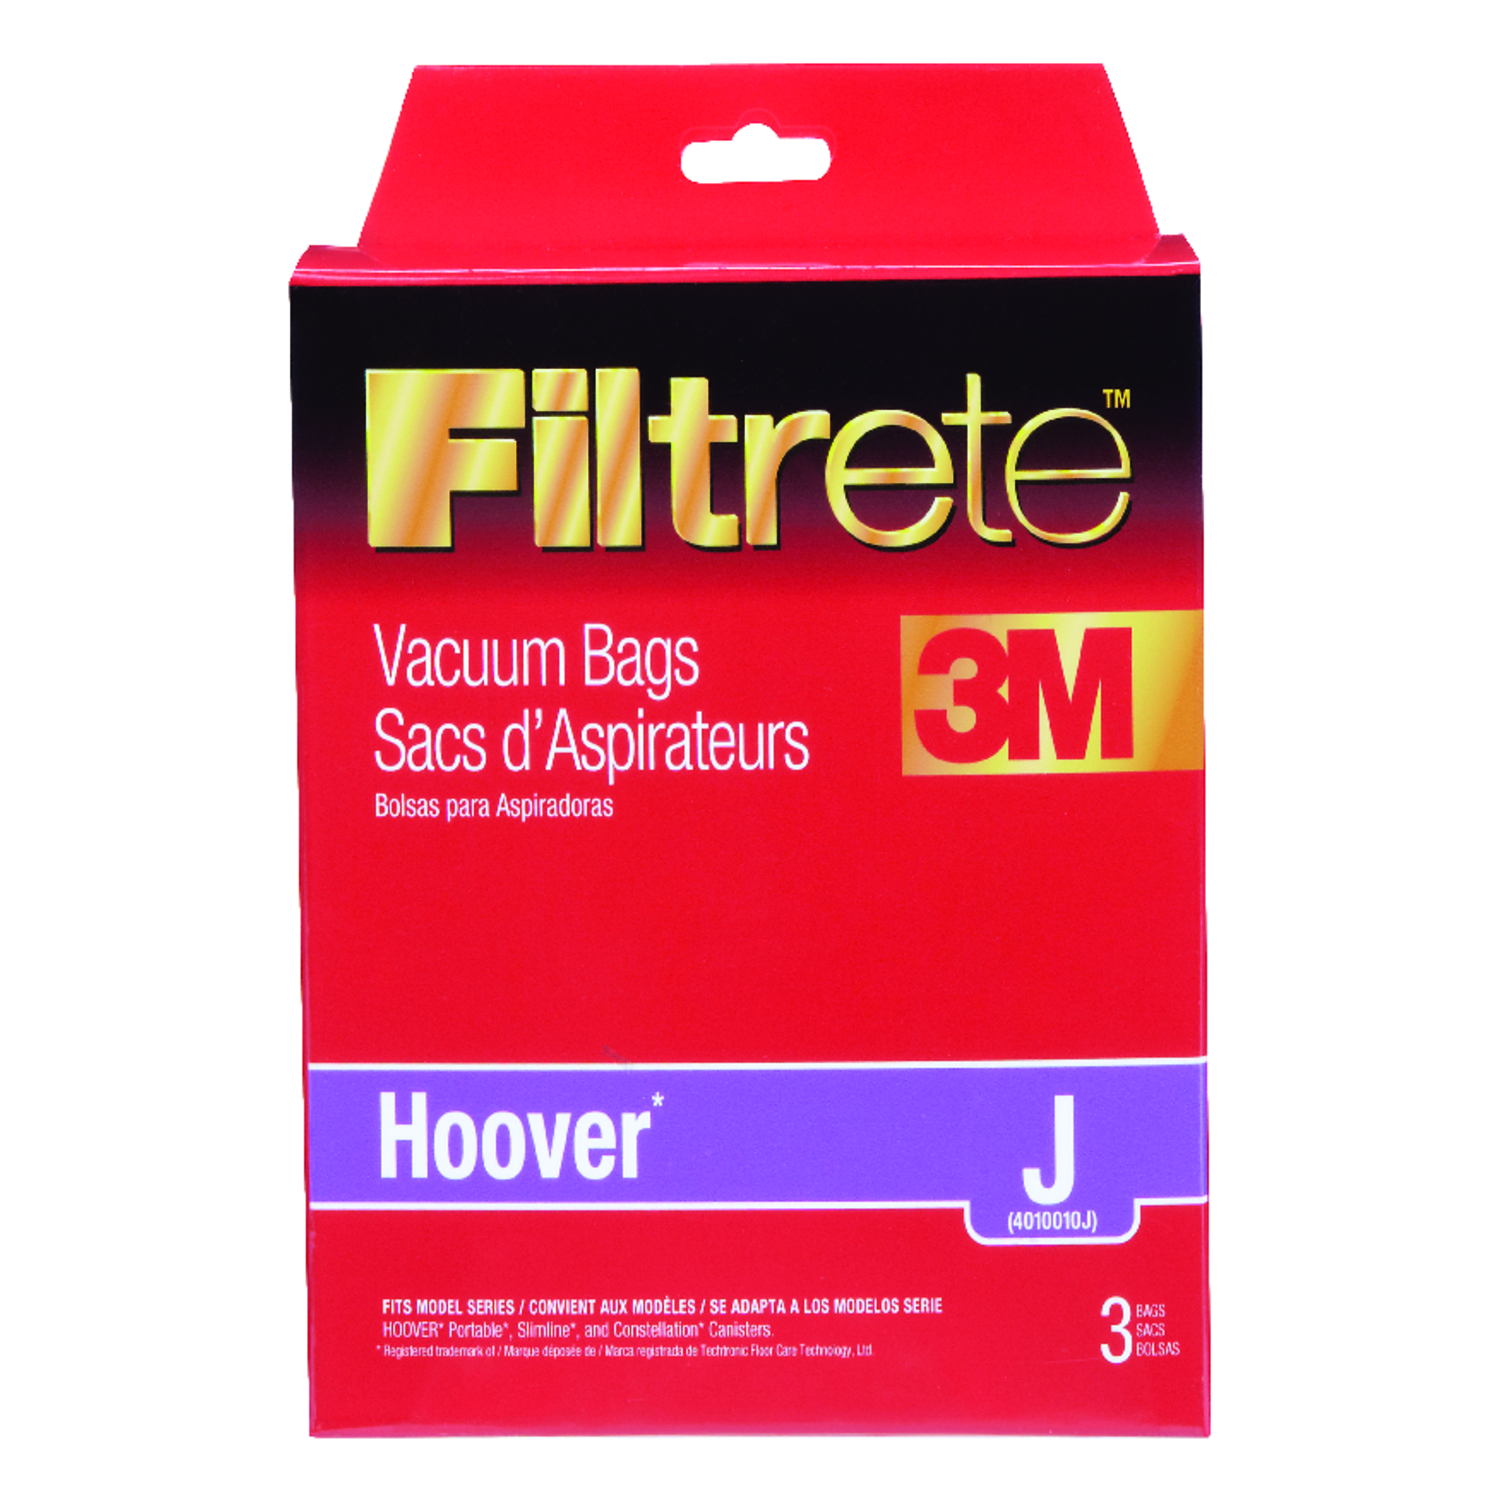 Hoover  Vacuum Bags Micro Allergen Style J Fits Hoover Boxed 3 / Pack Canister